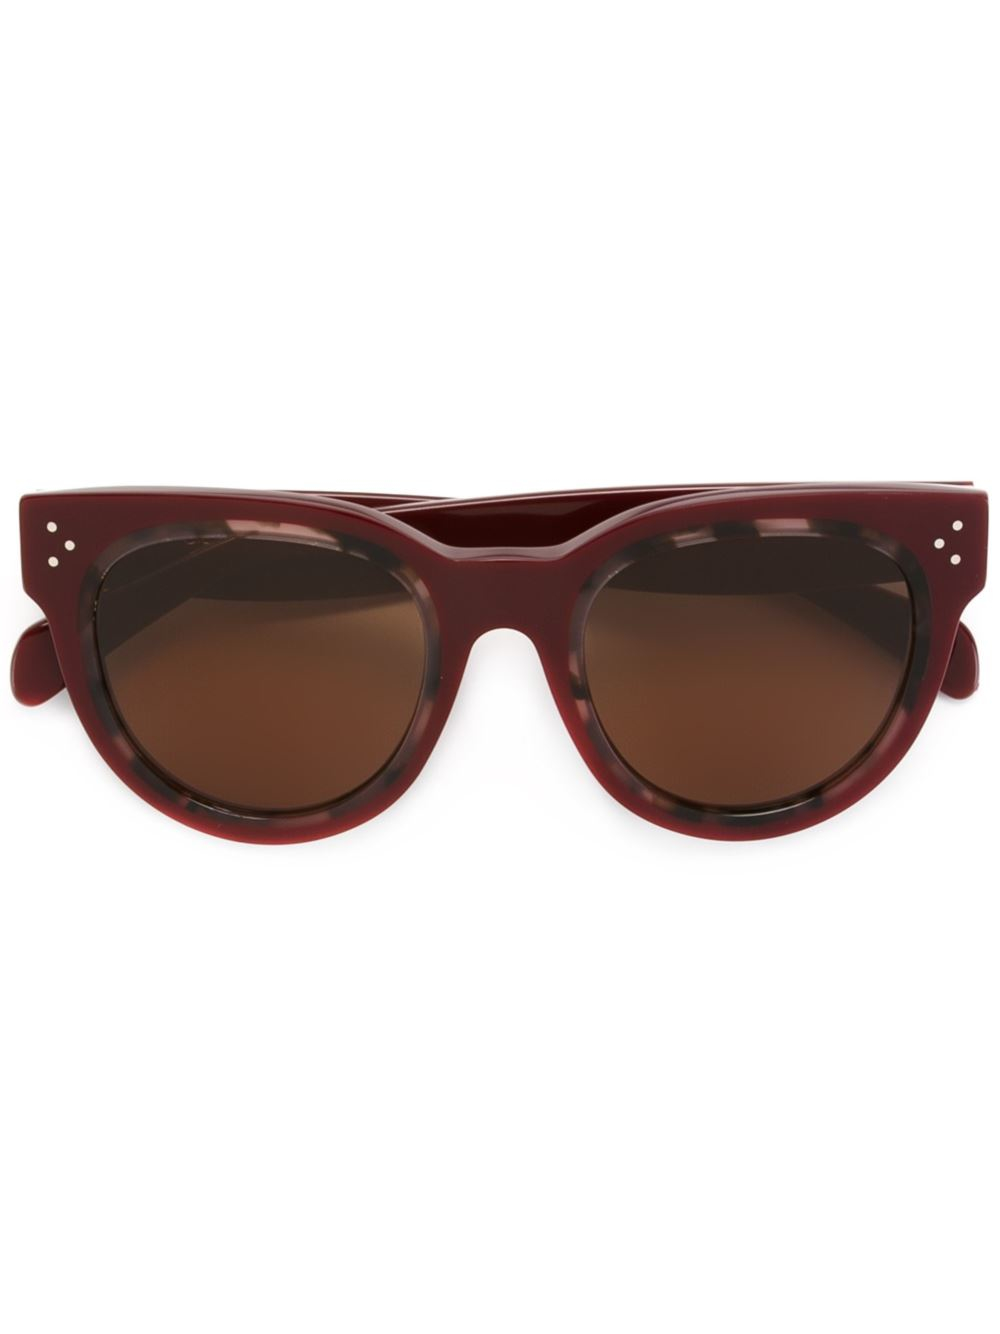 Celine Gold Frame Sunglasses : Celine Round Frame Sunglasses in Red Lyst